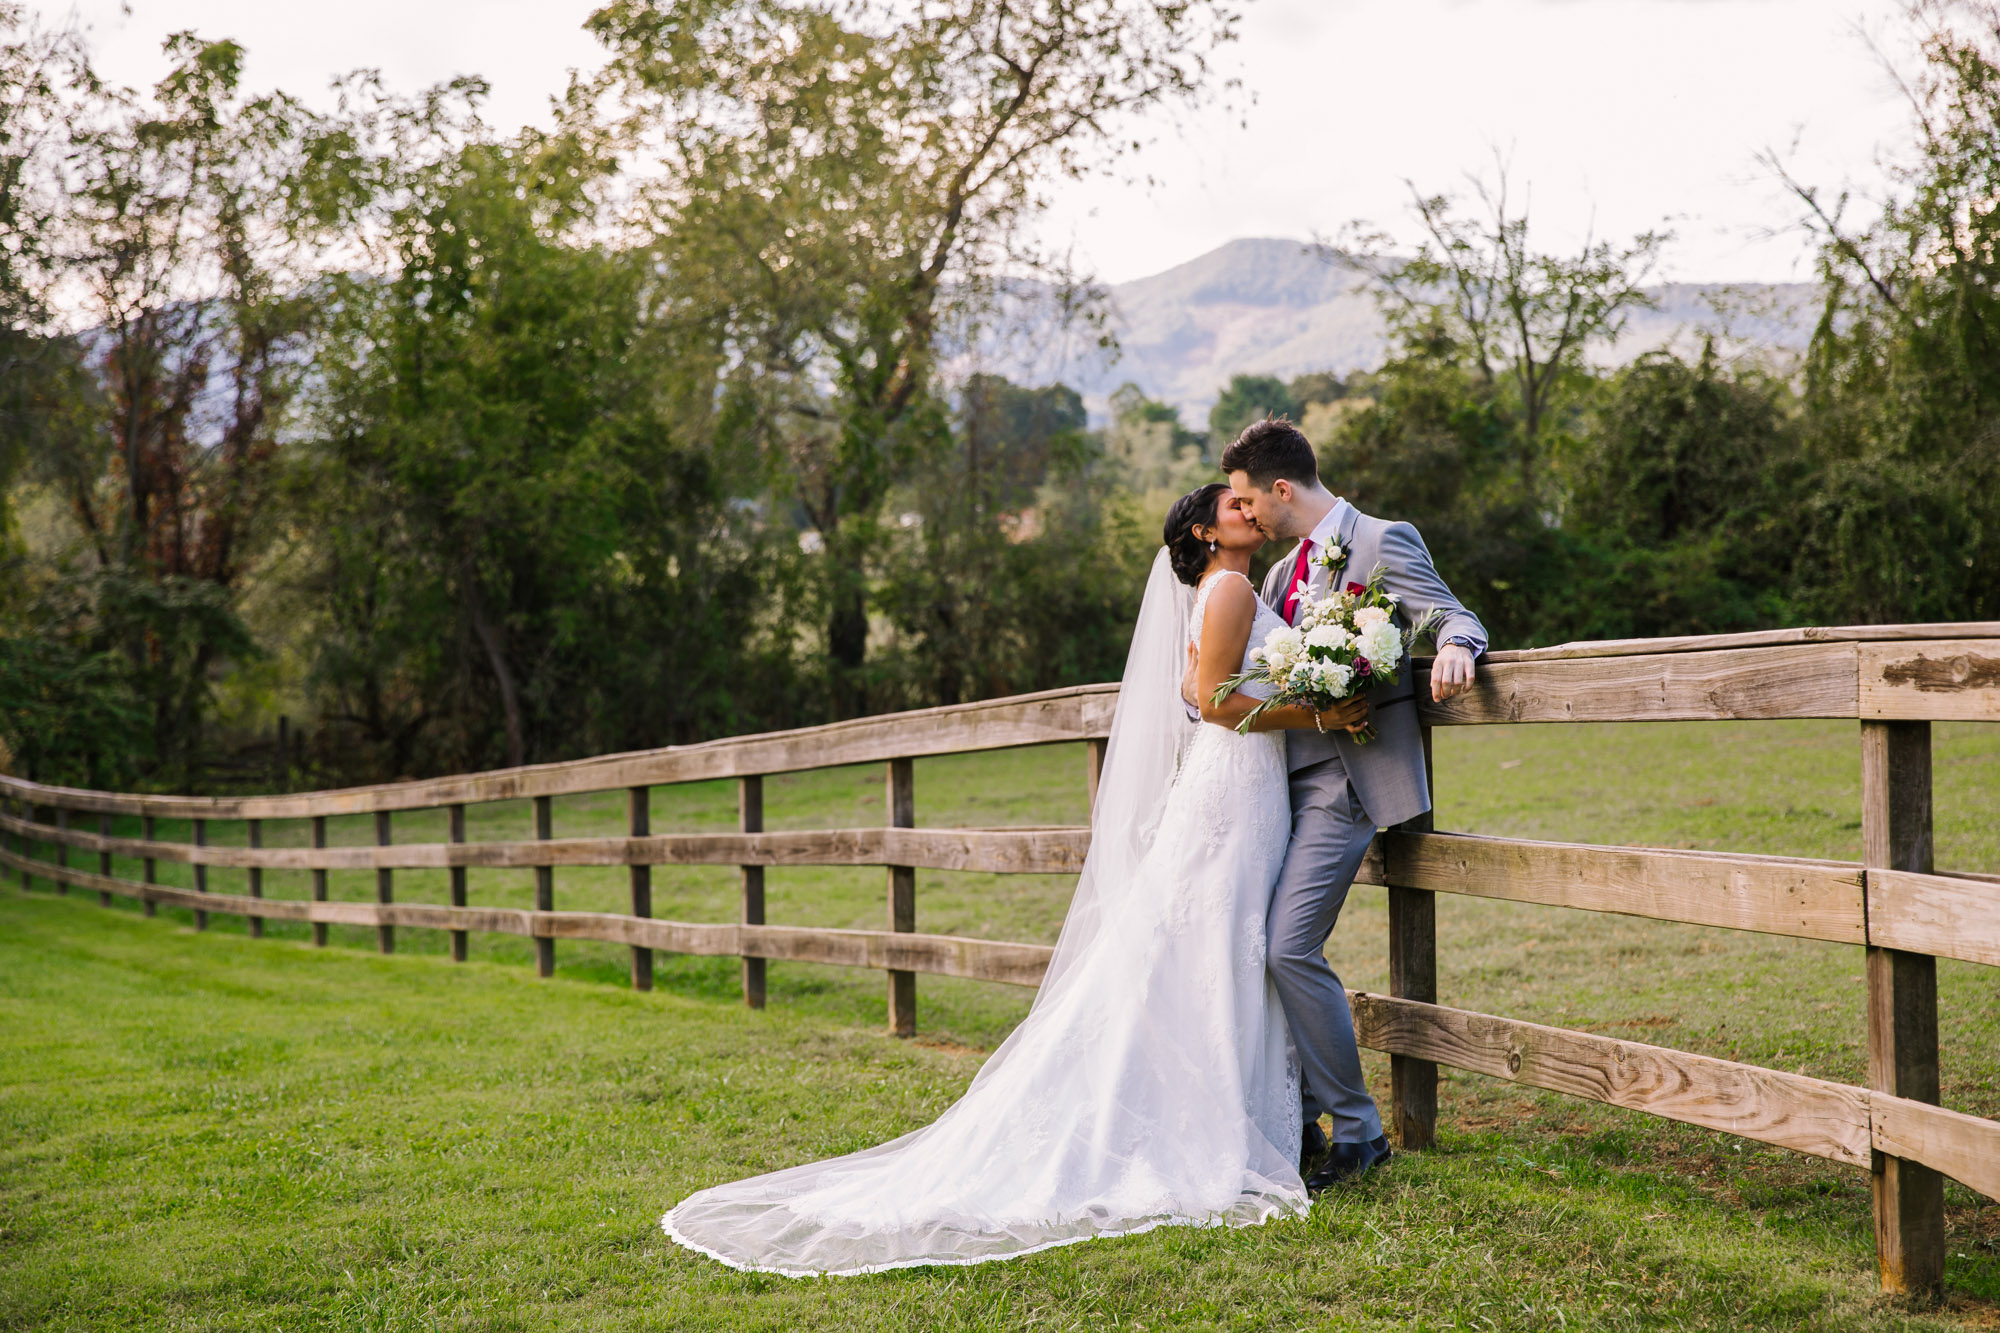 Waynesville NC Wedding Photography | Bride and Groom Kissing on the Fence line